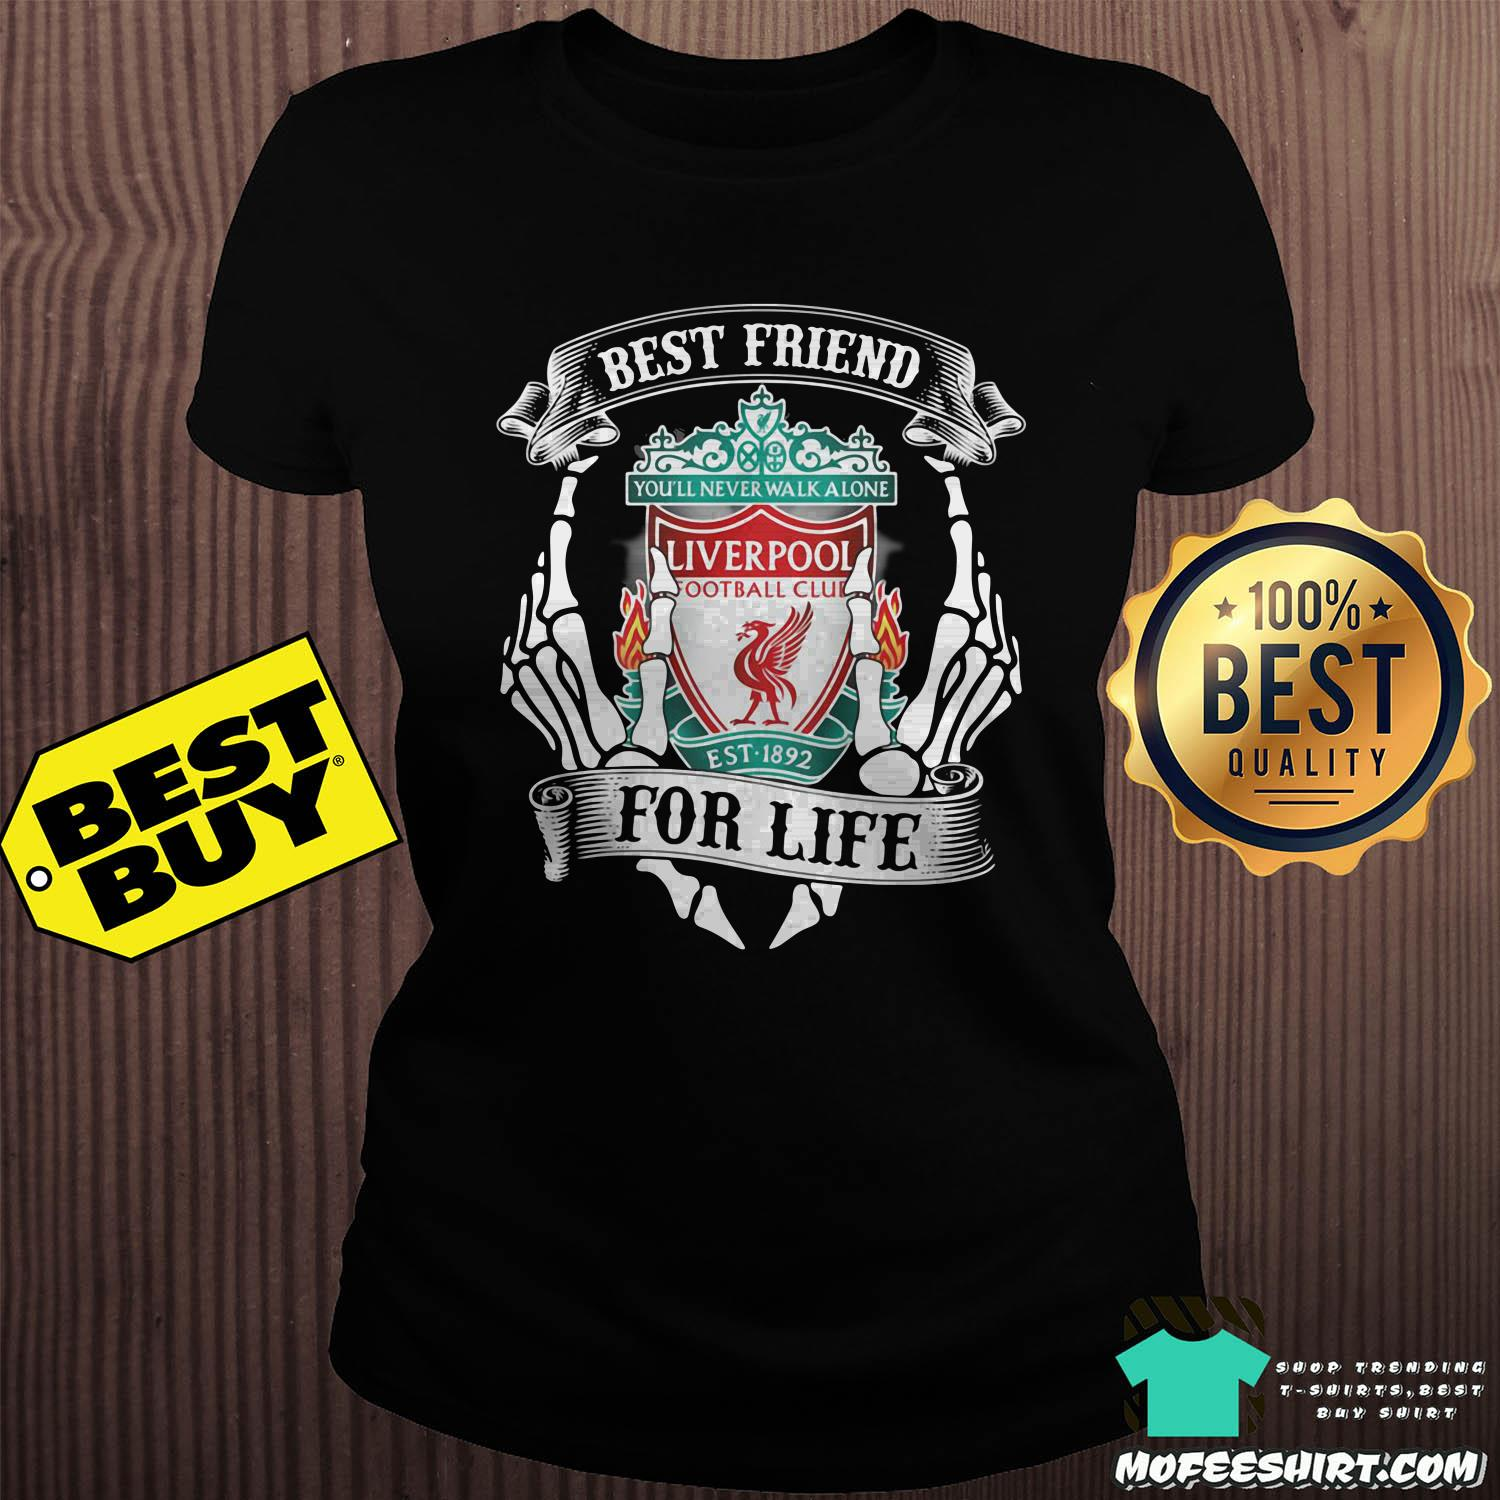 best friend for life liverpool football club youll never walk alone est 1982 ladies tee - Best friend For Life Liverpool Football Club You'll never Walk Alone EST 1982 shirt